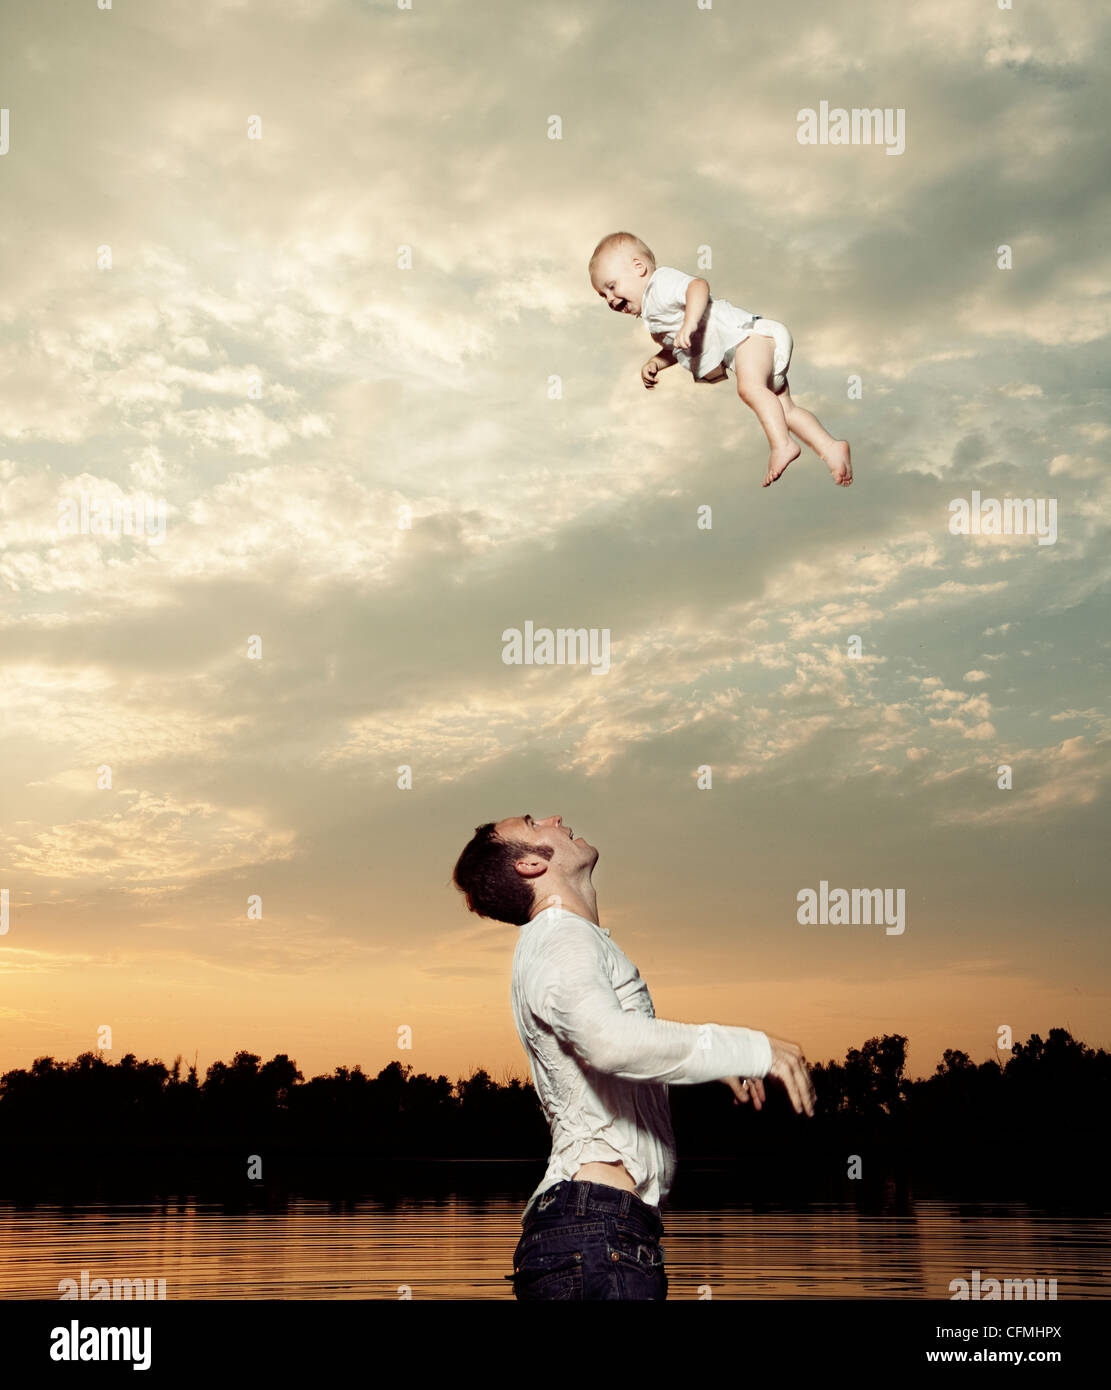 USA, Texas, Texarkana, Father tossing baby son up in air - Stock Image